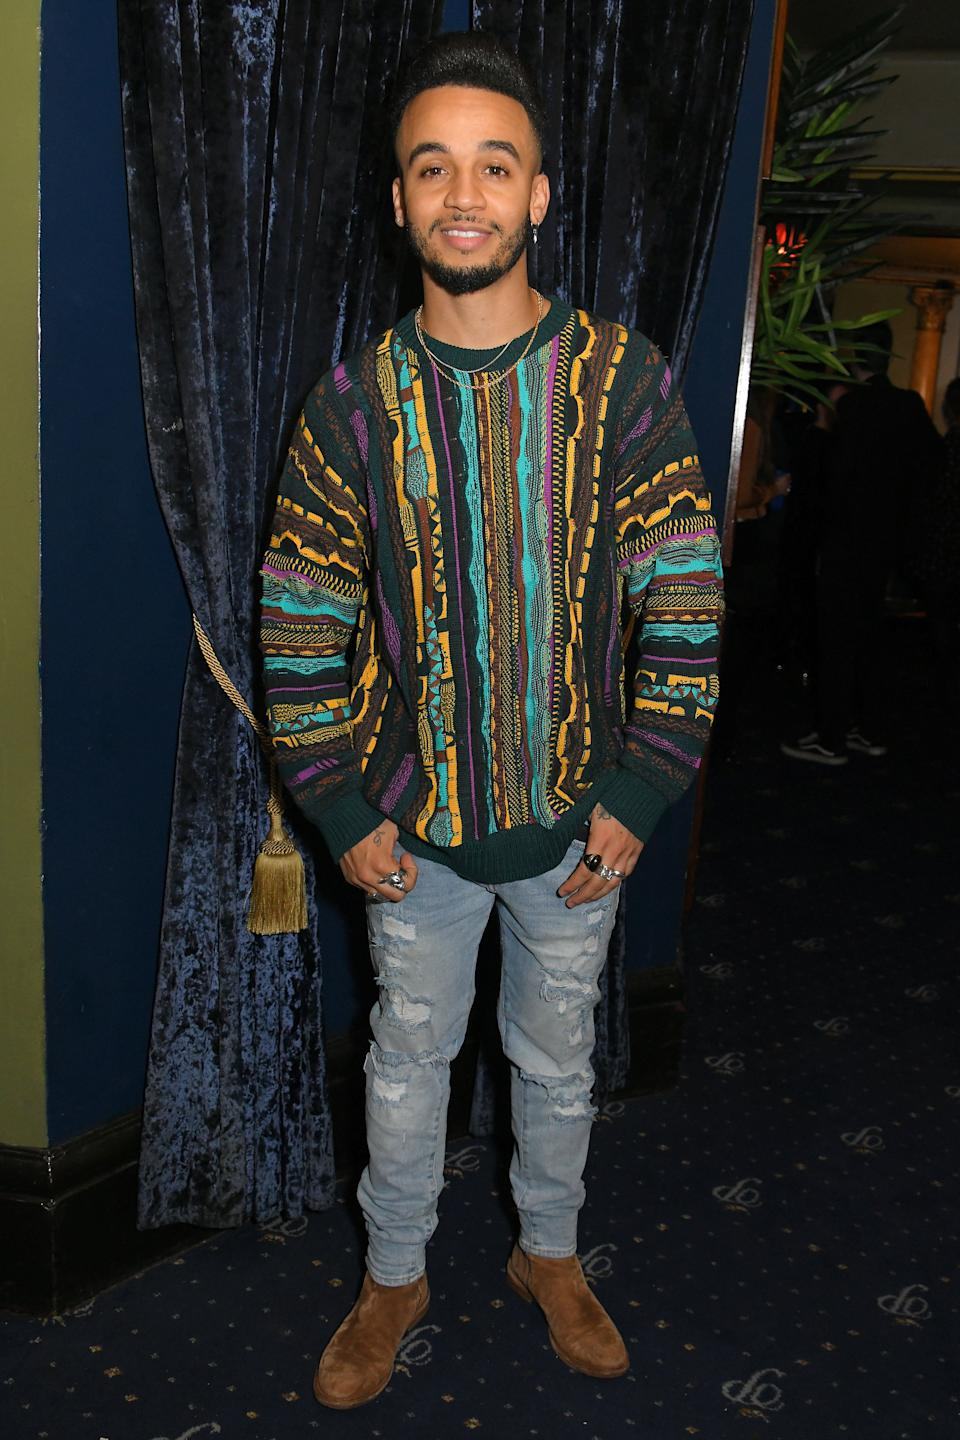 Rising to fame as a contestant on The X Factor, Aston returned to the reality TV sphere when his time in boyband JLS was over.<br /><br />As well as serving as a judge on Sky's Got To Dance, Aston competed in Celebrity Island With Bear Grylls, but didn't last long before he decided to take himself off the show. He fared much better when he appeared on Strictly, until he was sent home in one of the show's most controversial ever eliminations.